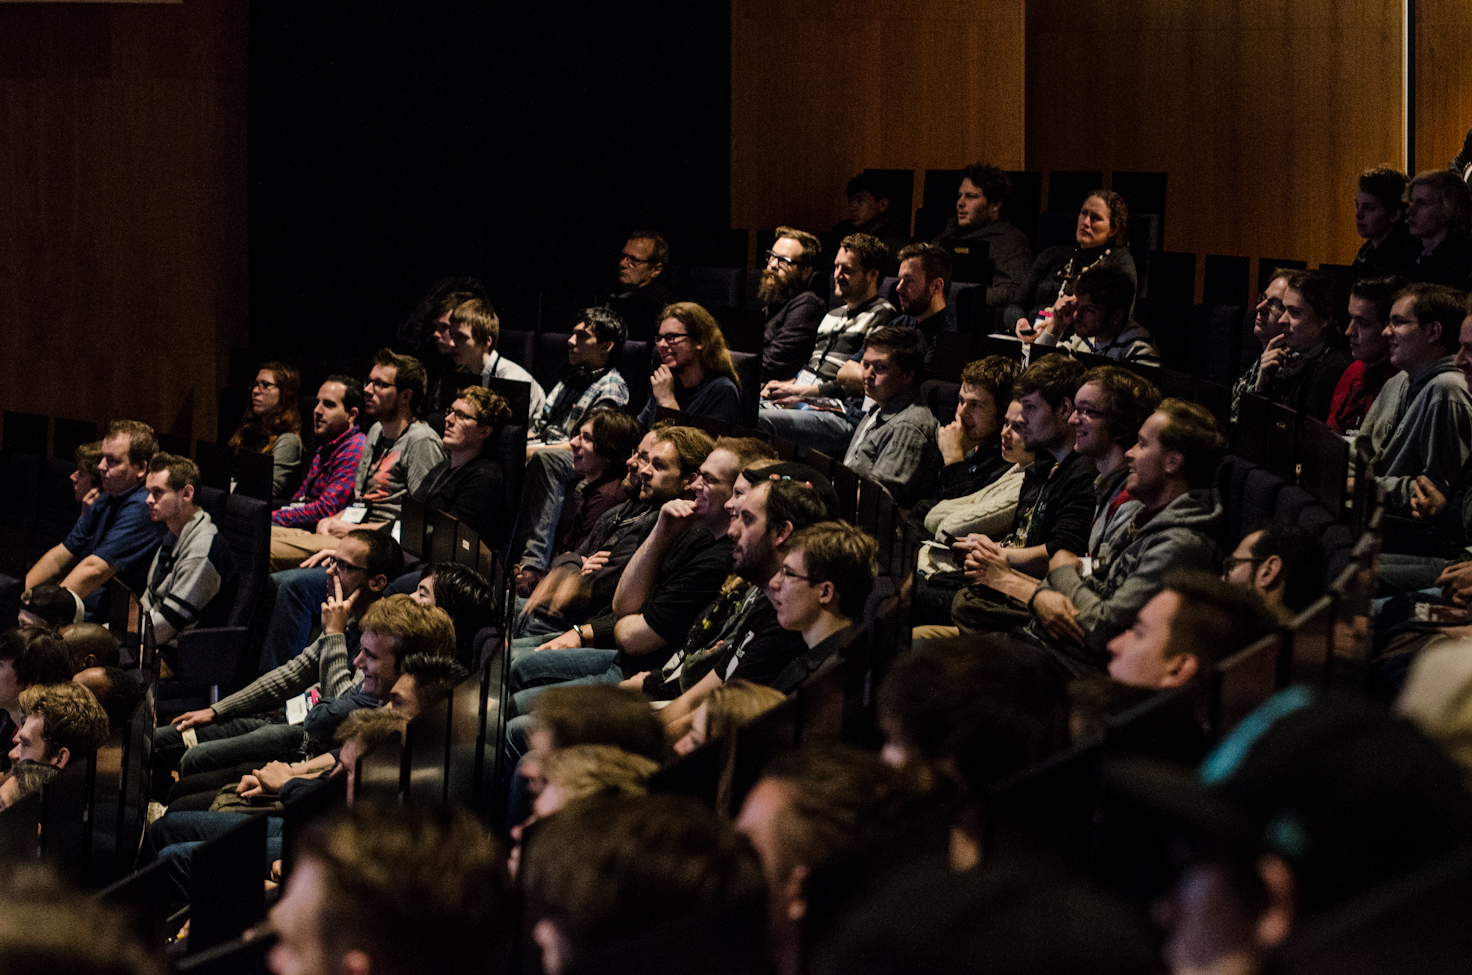 Control Conference | The conference for the Dutch game developer